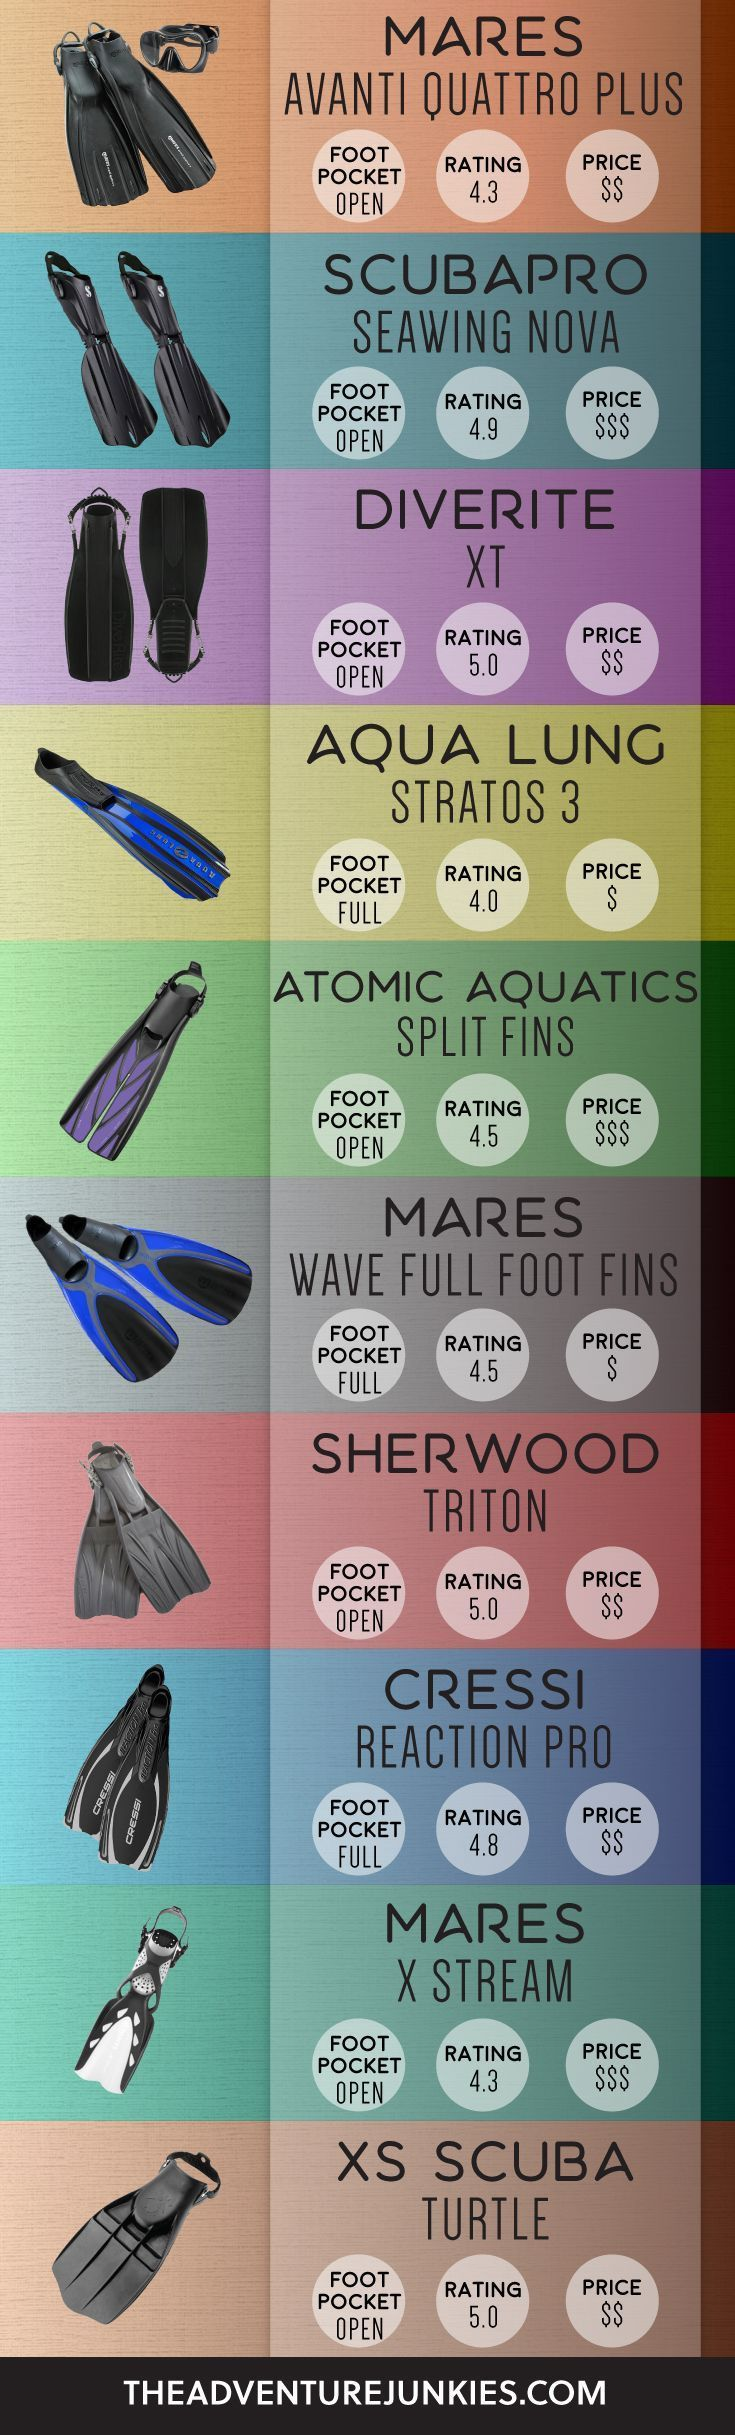 The Best Scuba Diving Fins – Best Dive Gear - Scuba Diving Gear and Equipment Posts – Dive Products and Accessories #ScubaDivingEquipmentandSites